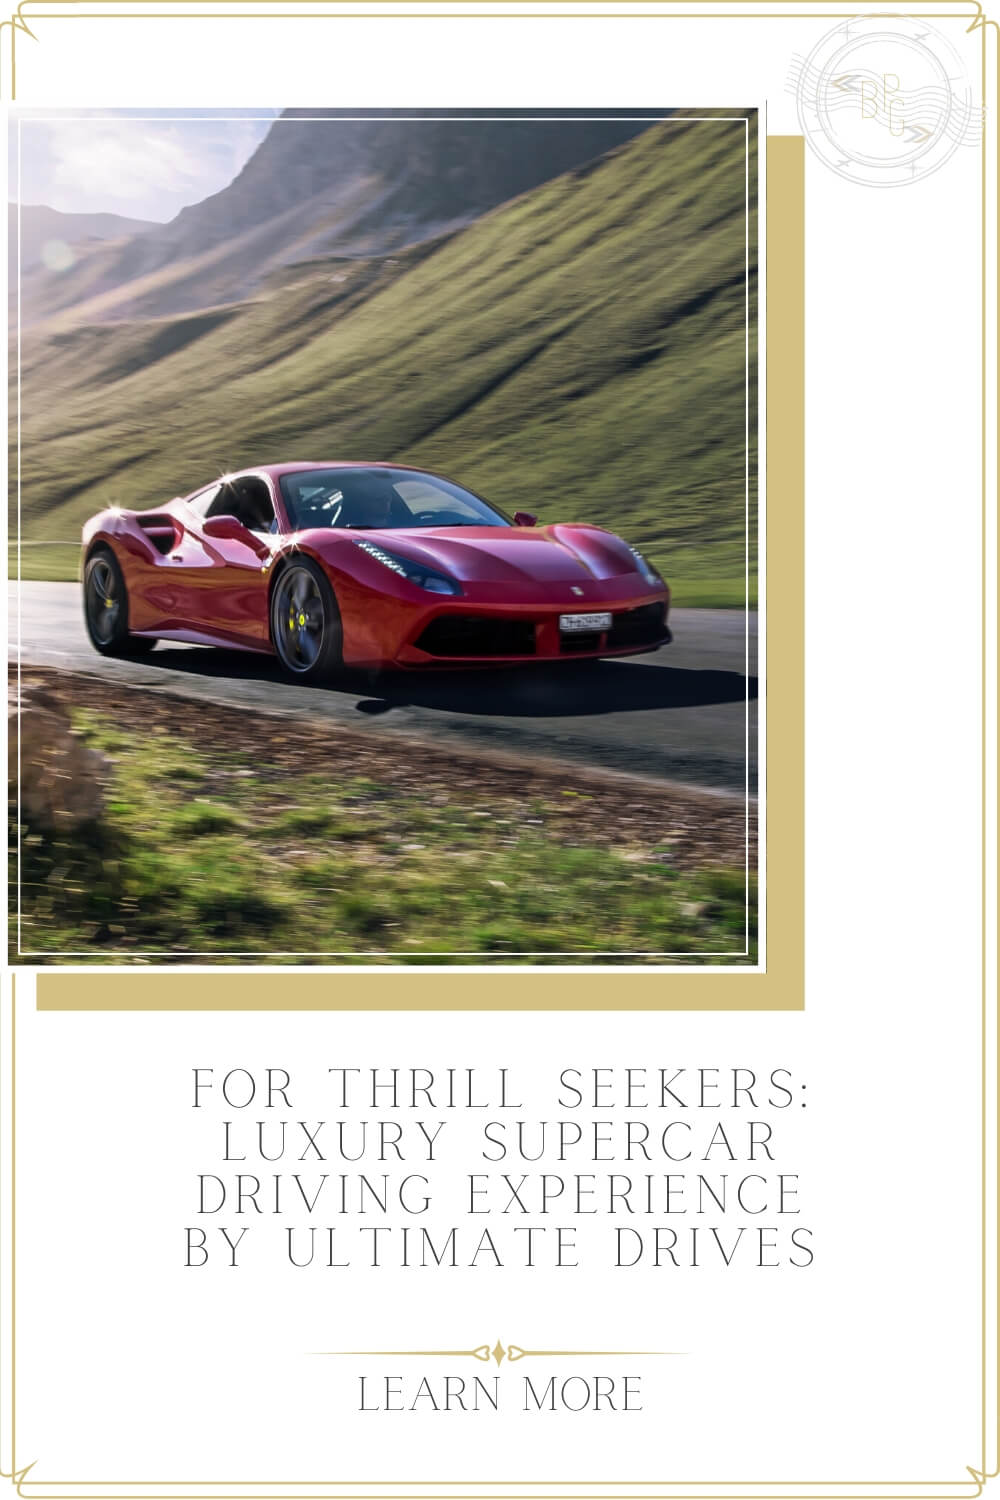 Luxury Supercar Driving Experience by Ultimate Drives